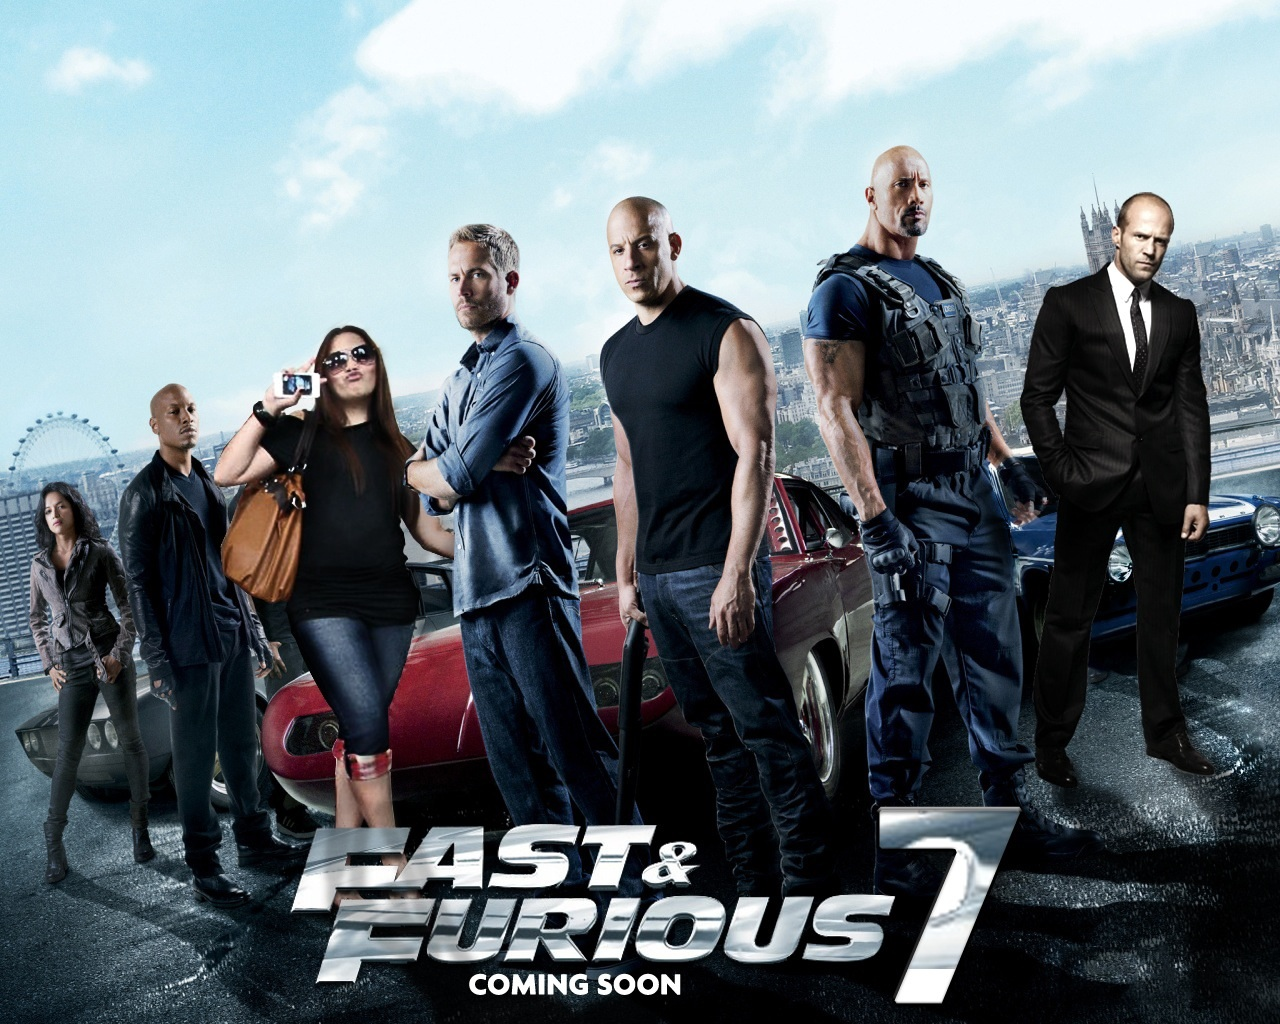 Colorado's generous film incentive program has lured many productions to film in the state, including the most recent installment of the globally popular  Fast & Furious  franchise.